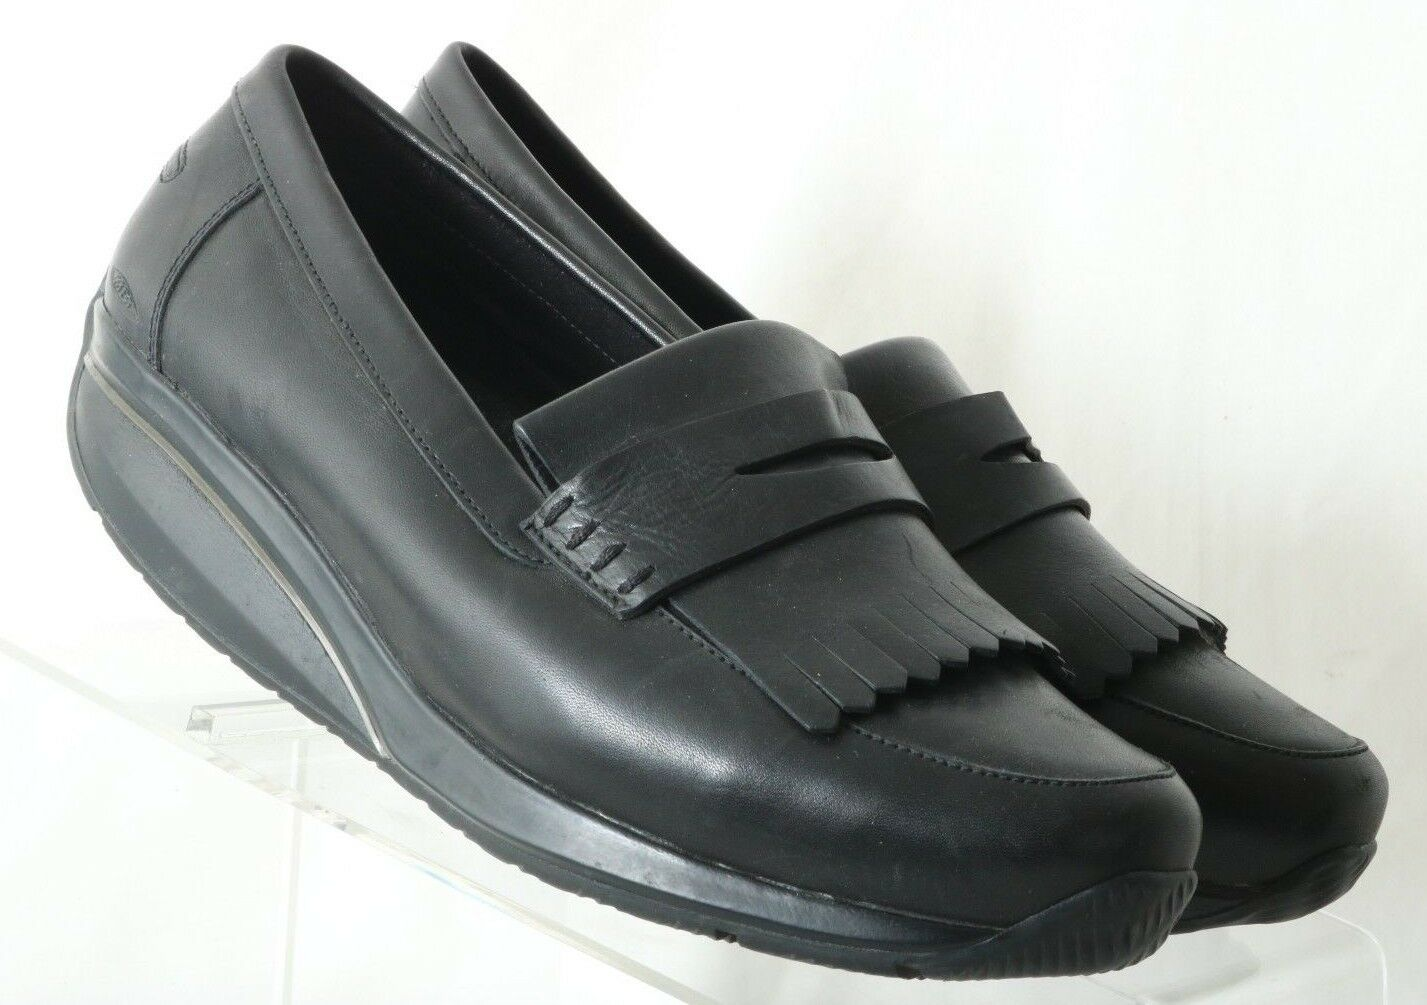 MBT Pendo nero Rocker Toning Walking Walking Walking scarpe 700222-03N Donna  US 9 - 9.5 2fd256